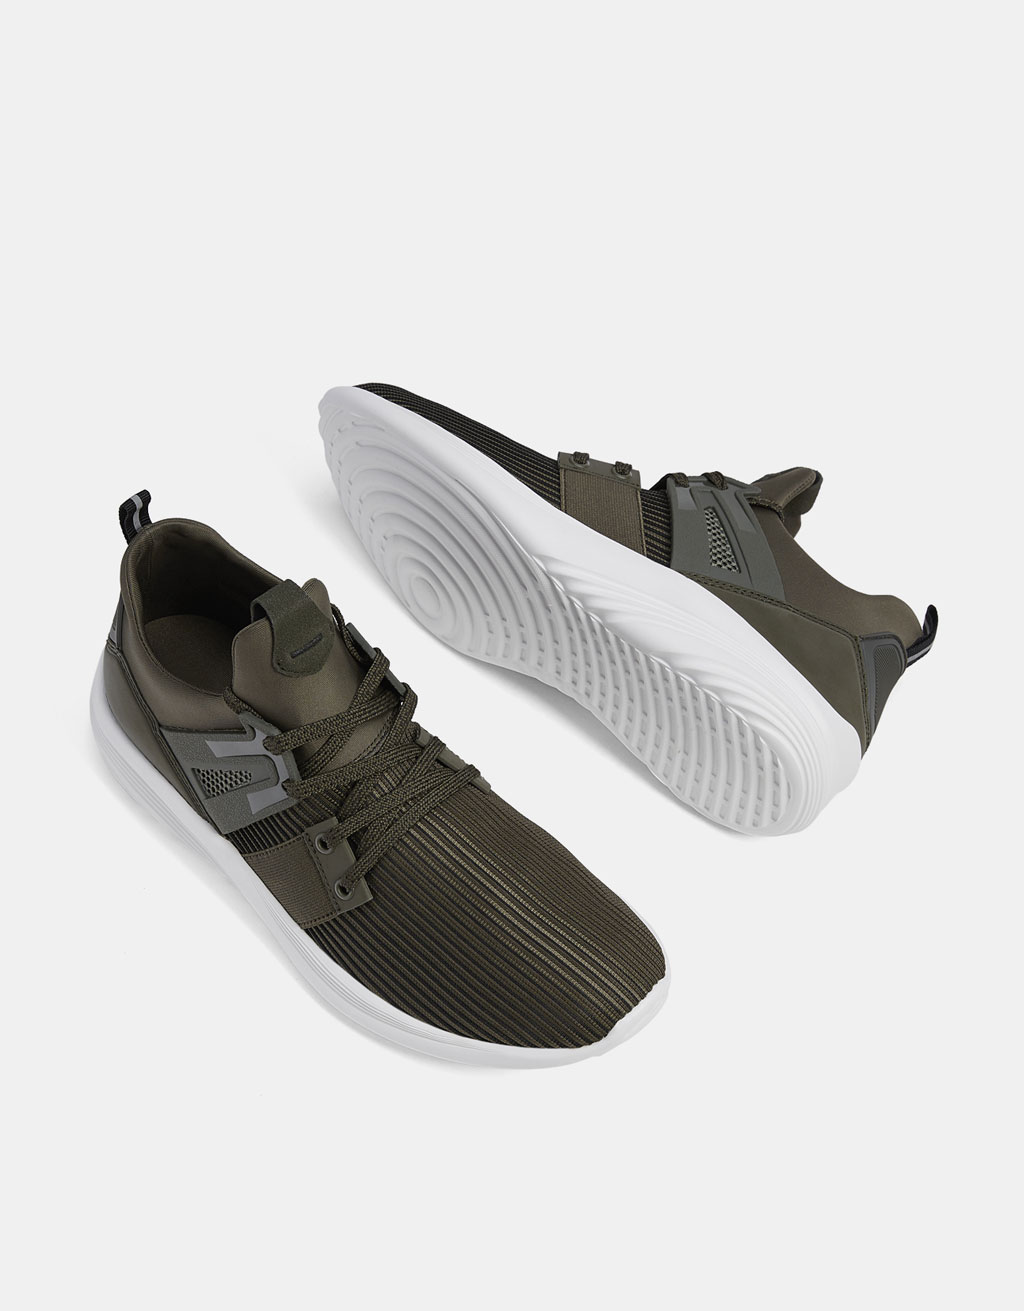 Men's technical contrasting sneakers in wavy fabric